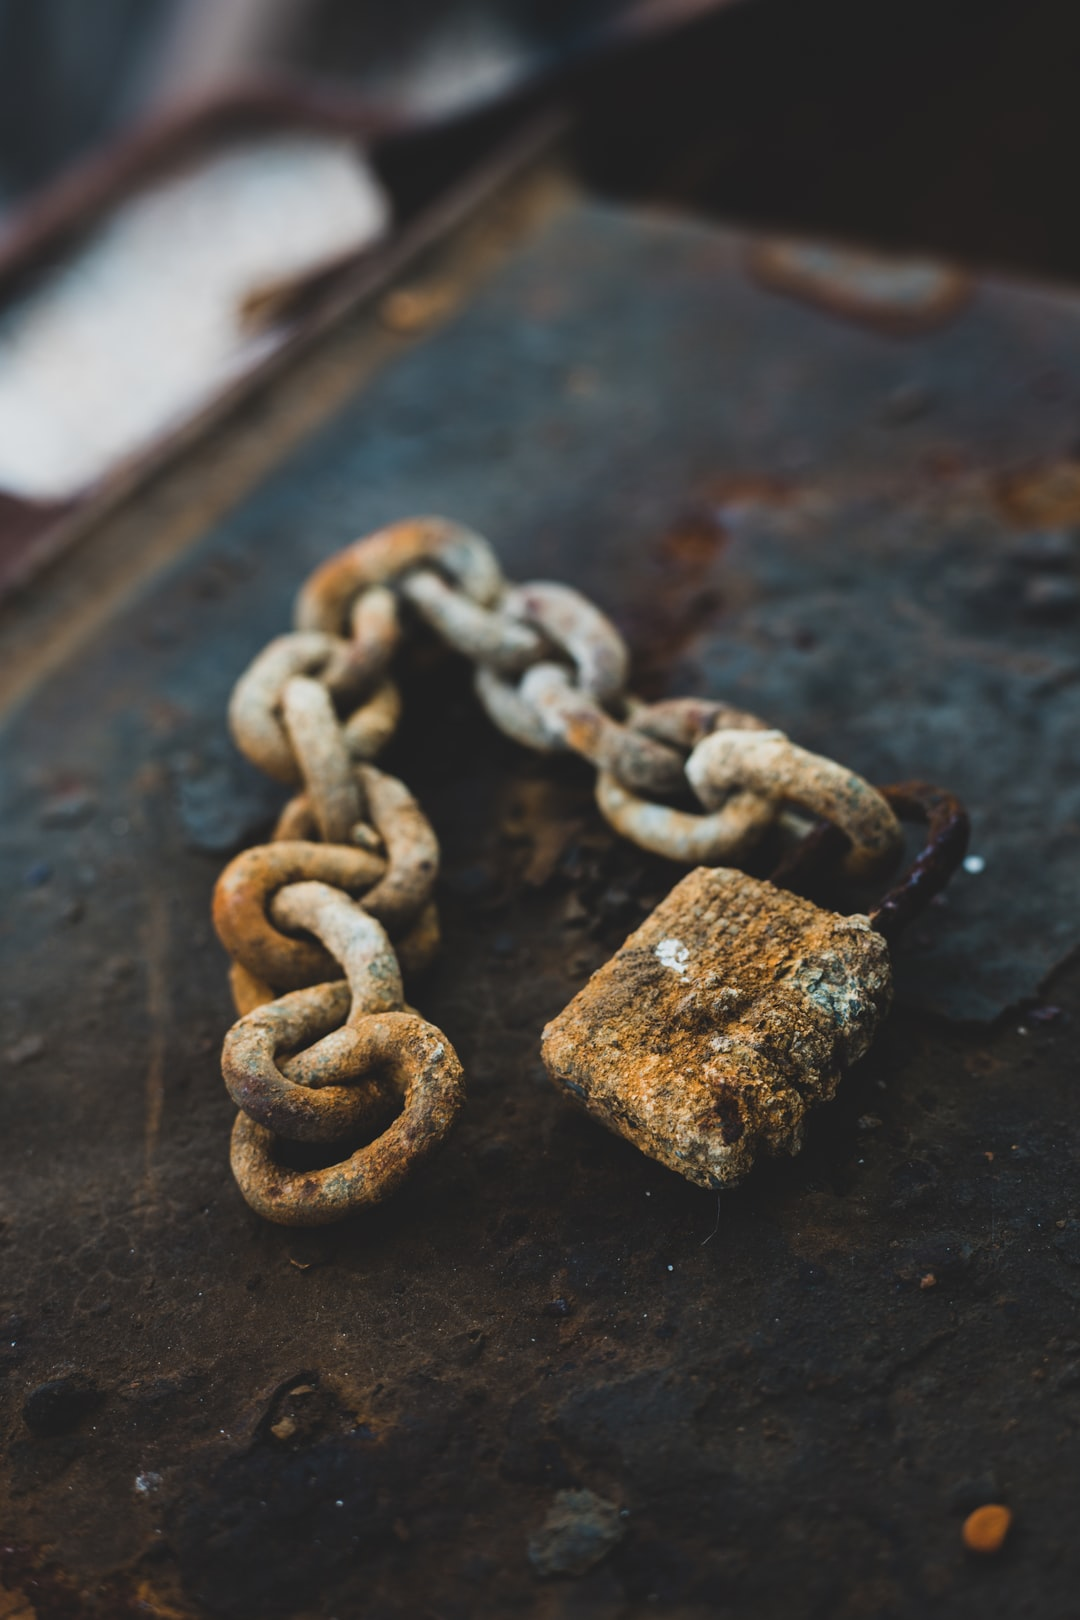 This lock made me think a lot. It was made to be strong and keep things safe, but after years of exposure to the sea, storms and salt, it's become this frail, useless object whose only purpose is to look pretty and remind every person looking on of the effects of time.